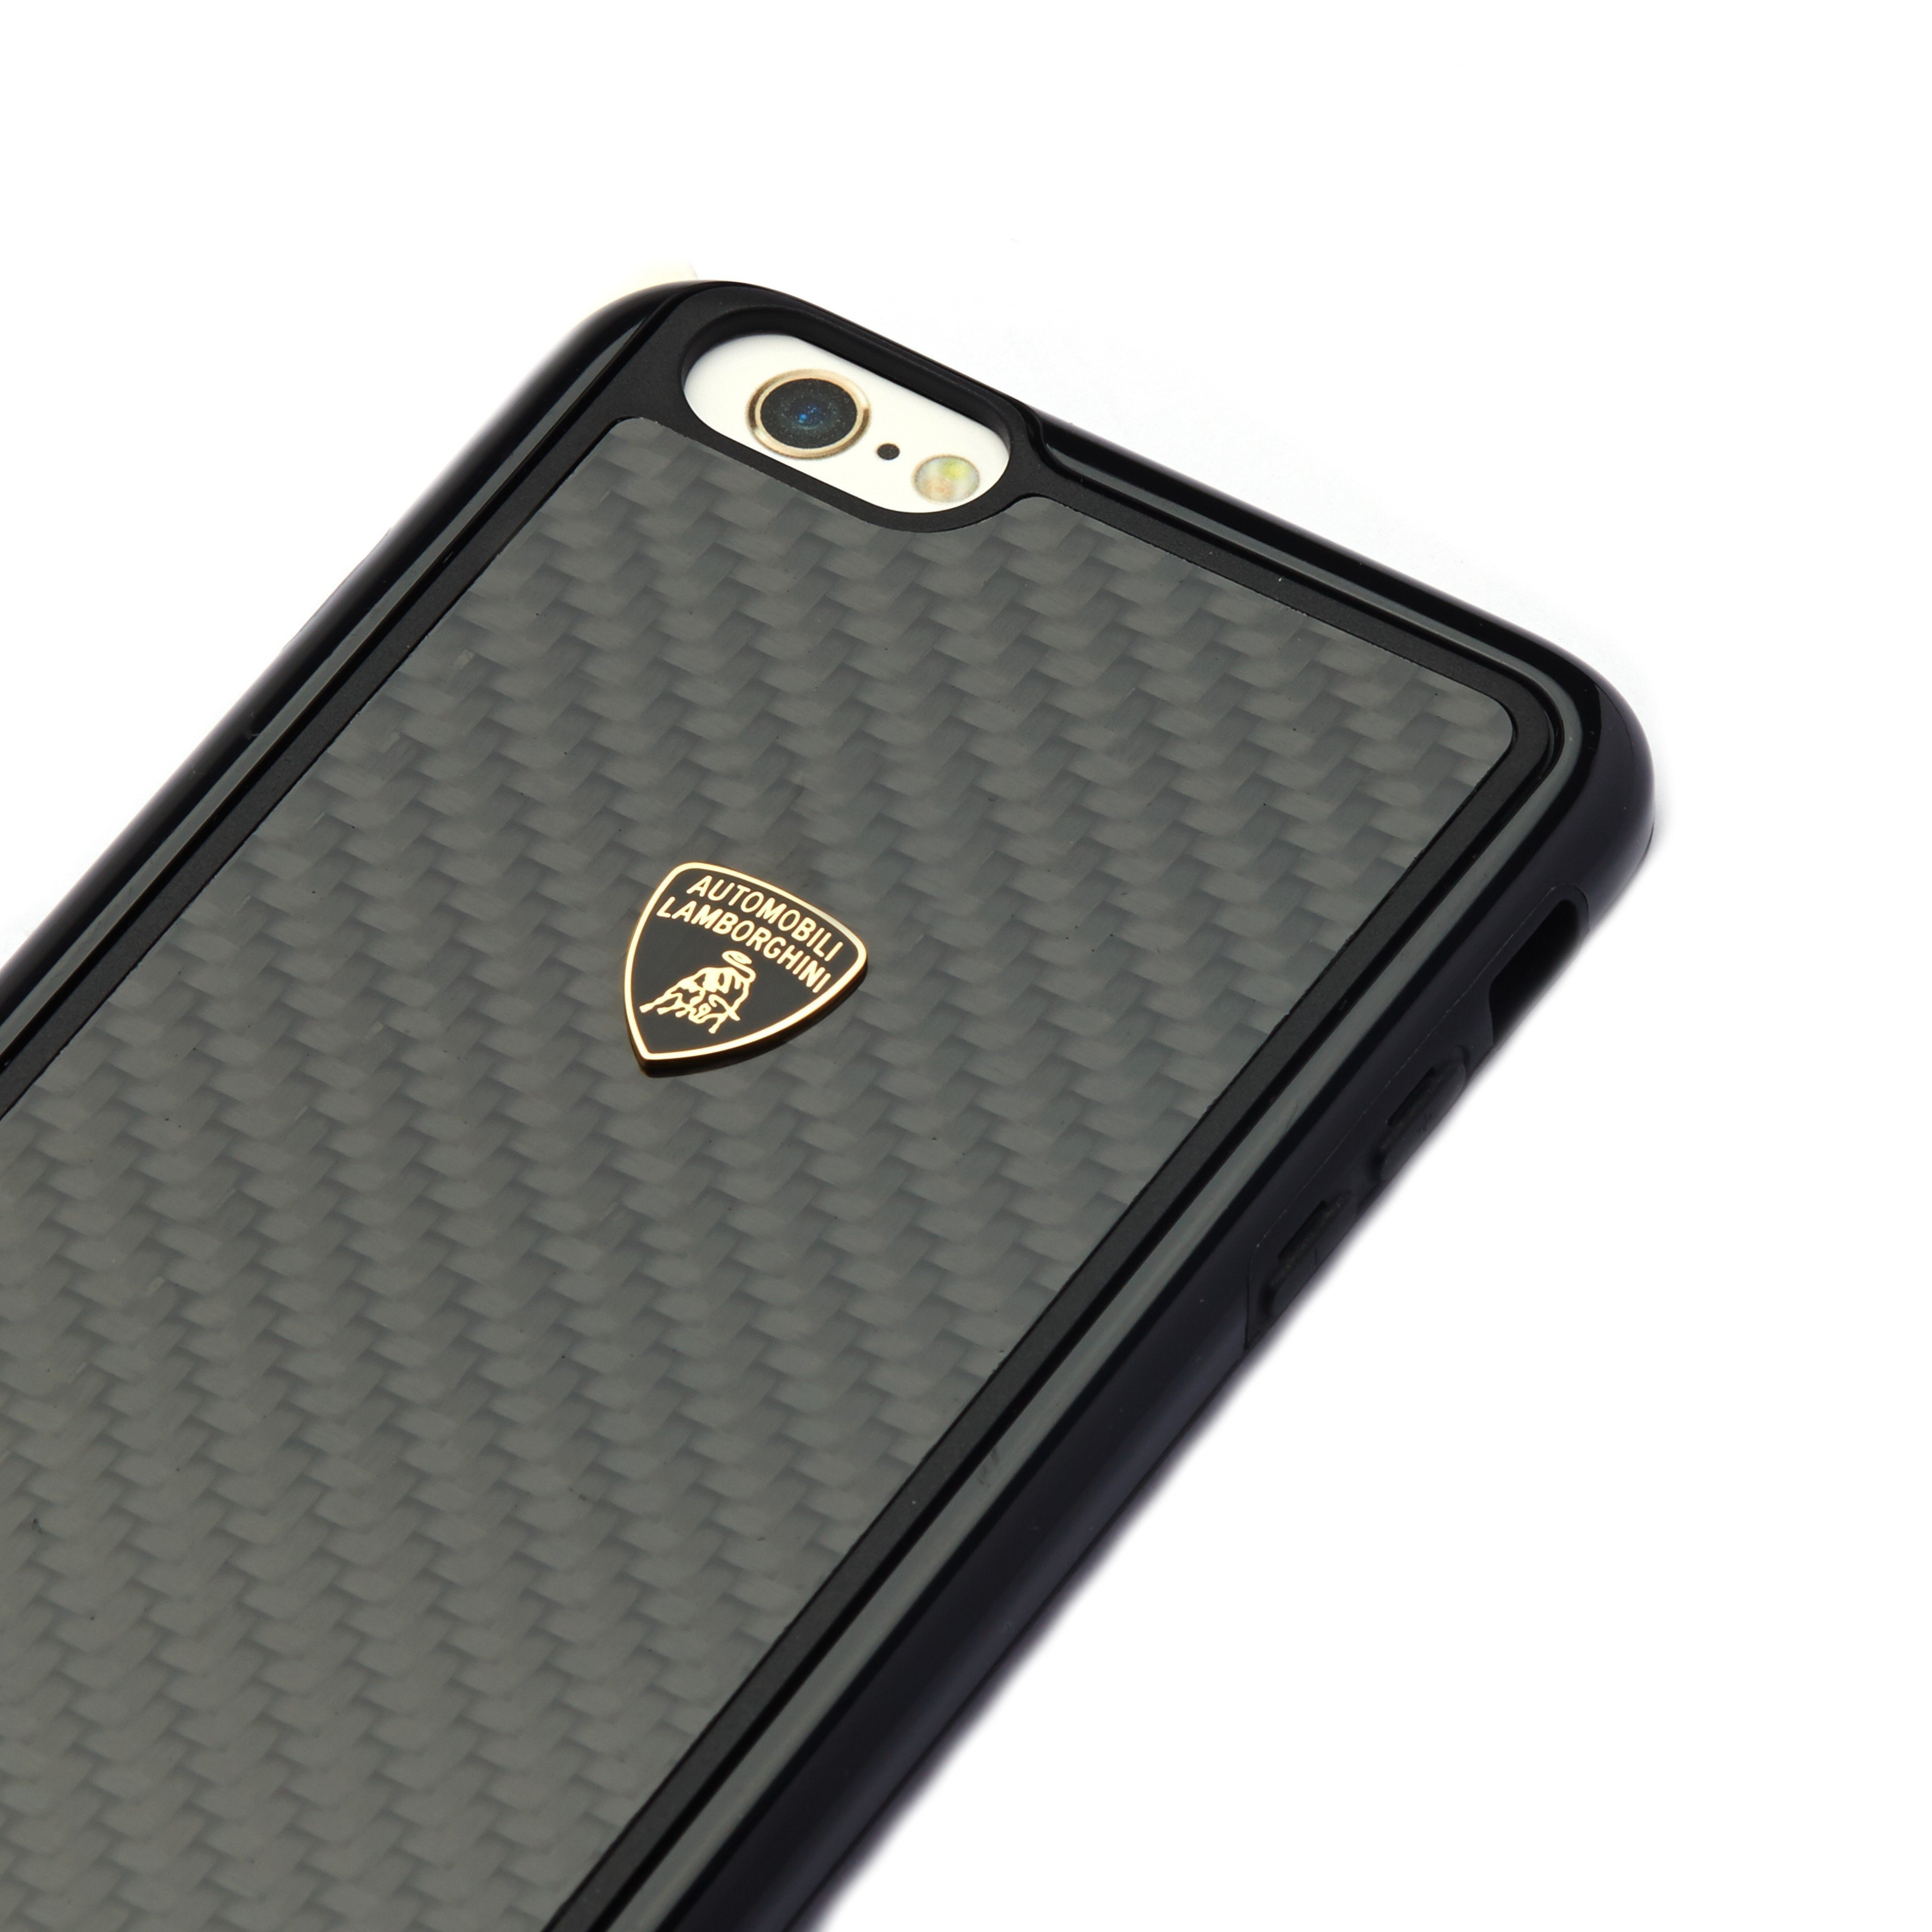 new product 2fabf a6f42 Lamborghini ® Apple iPhone 6 / 6S Official 3D Carbon Fiber Limited Edition  Case Back Cover